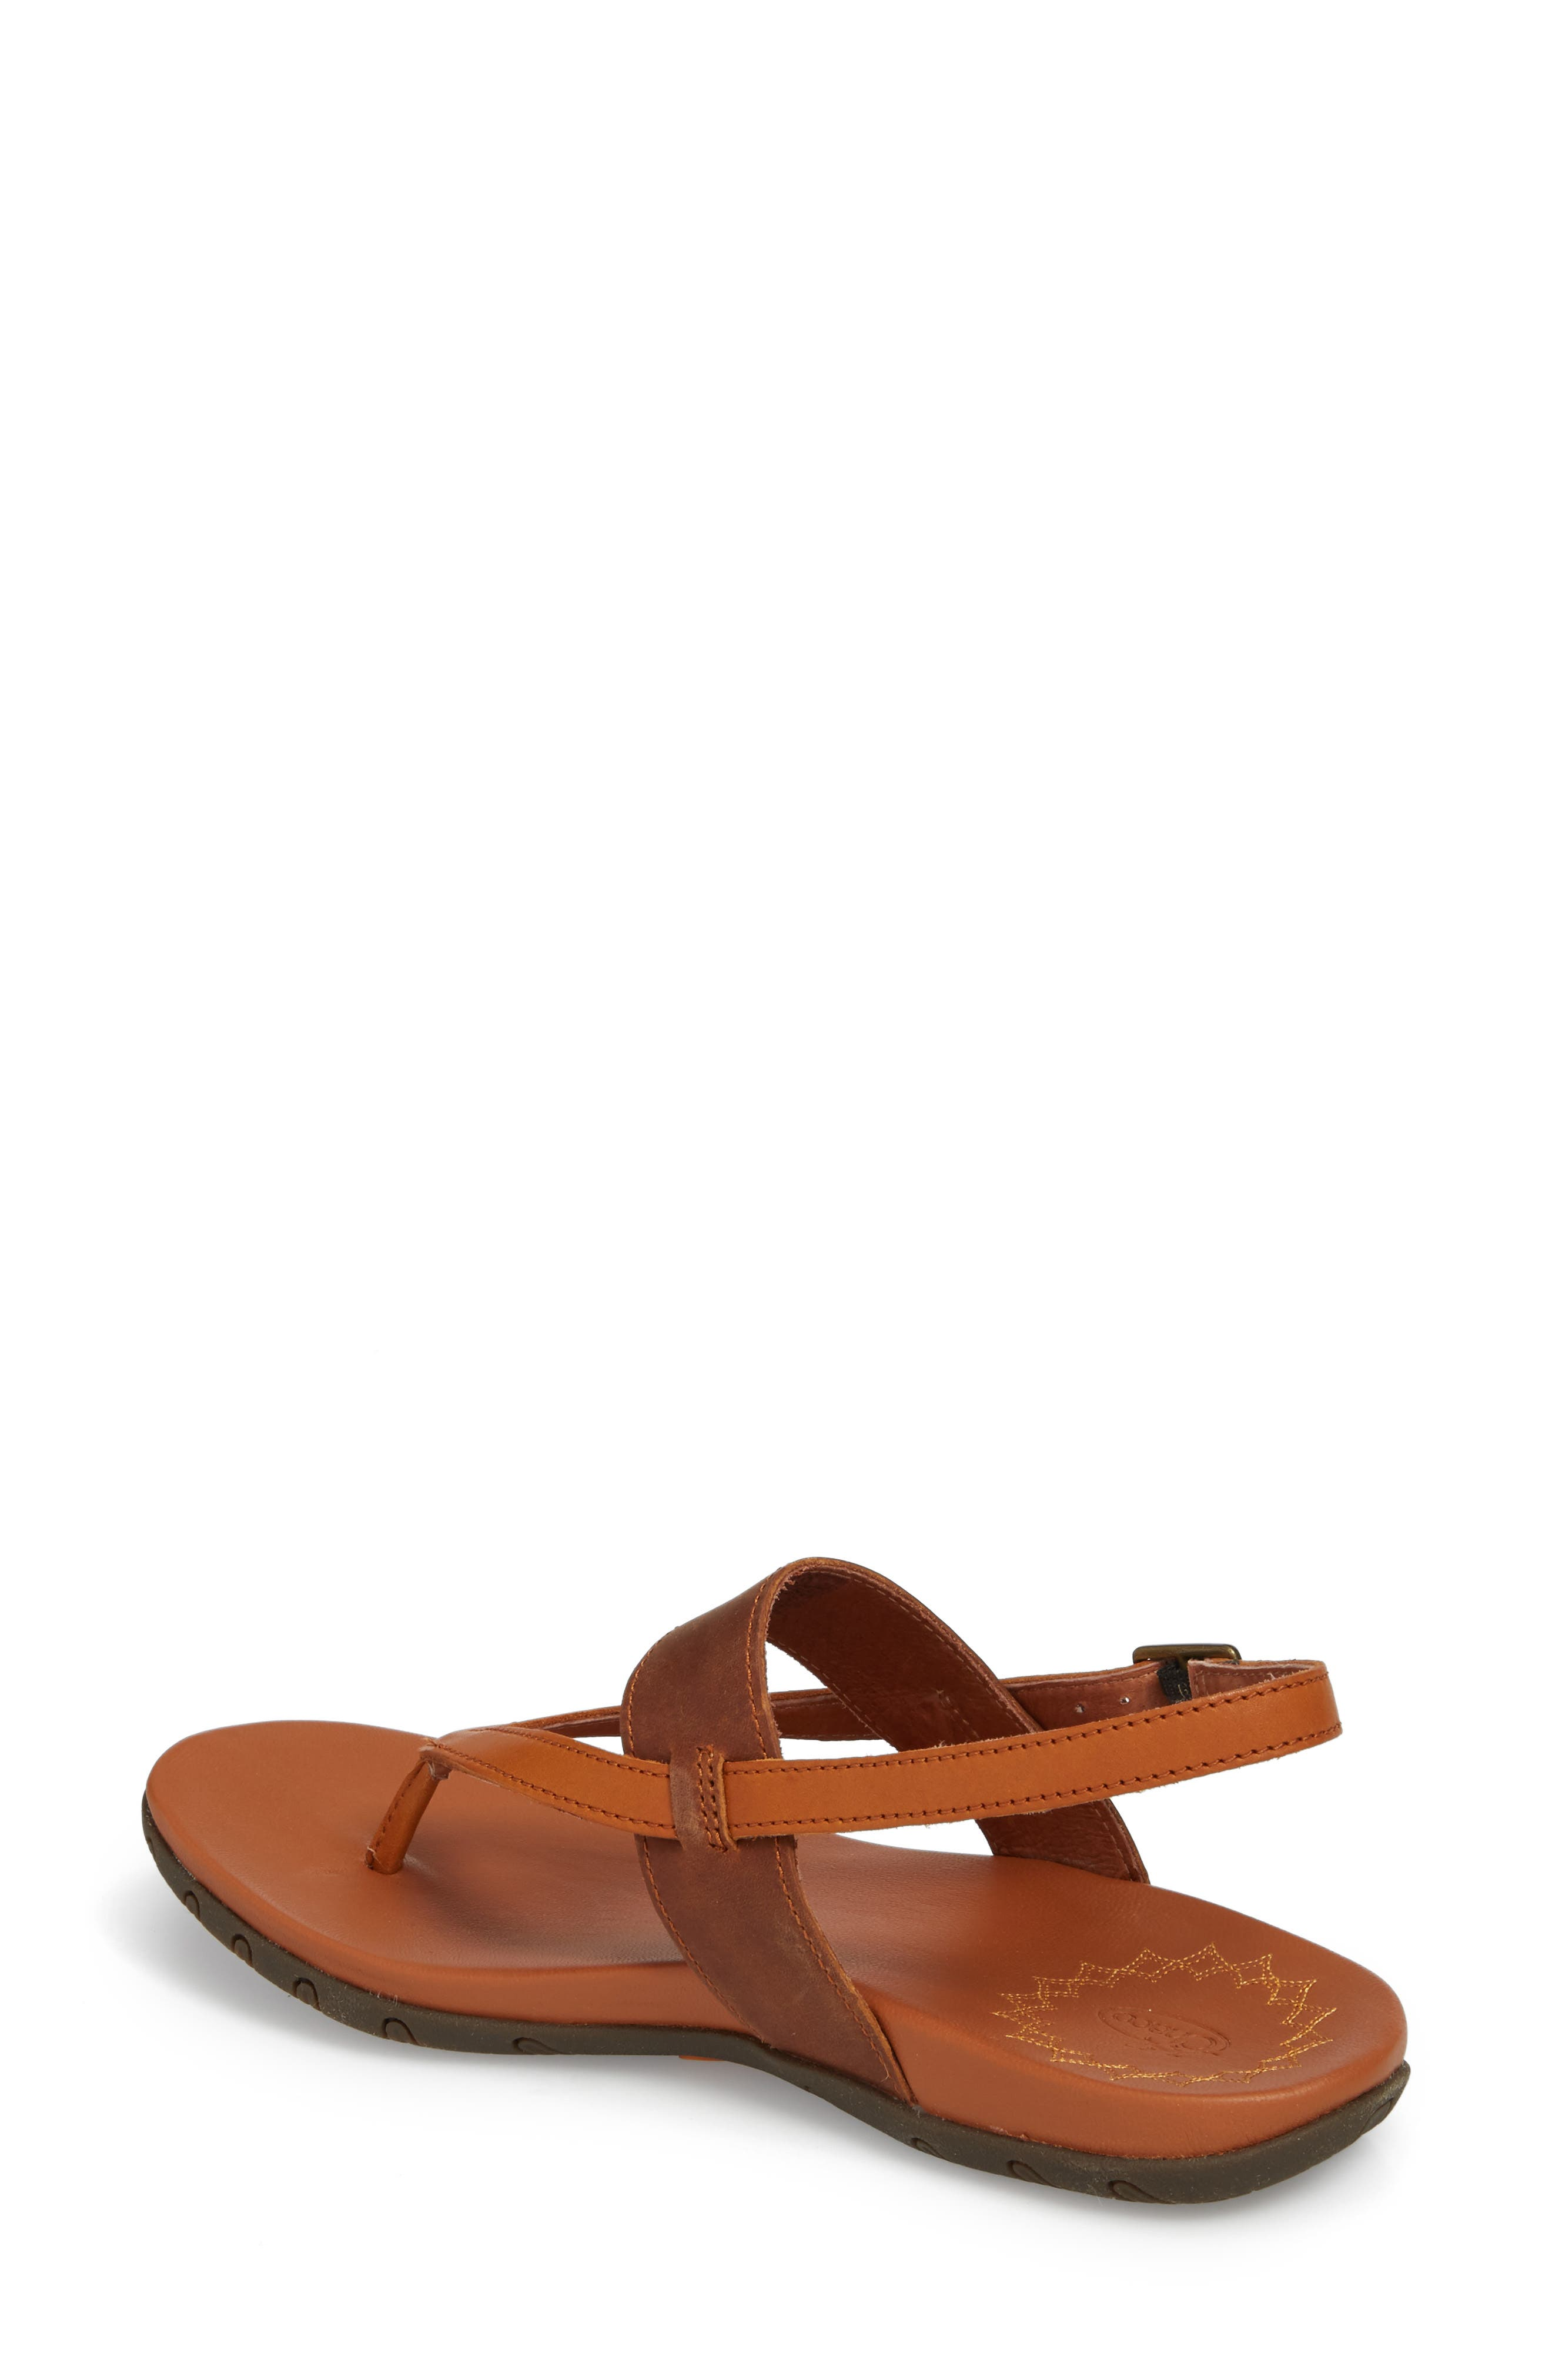 Maya II Sandal,                             Alternate thumbnail 2, color,                             Rust Leather